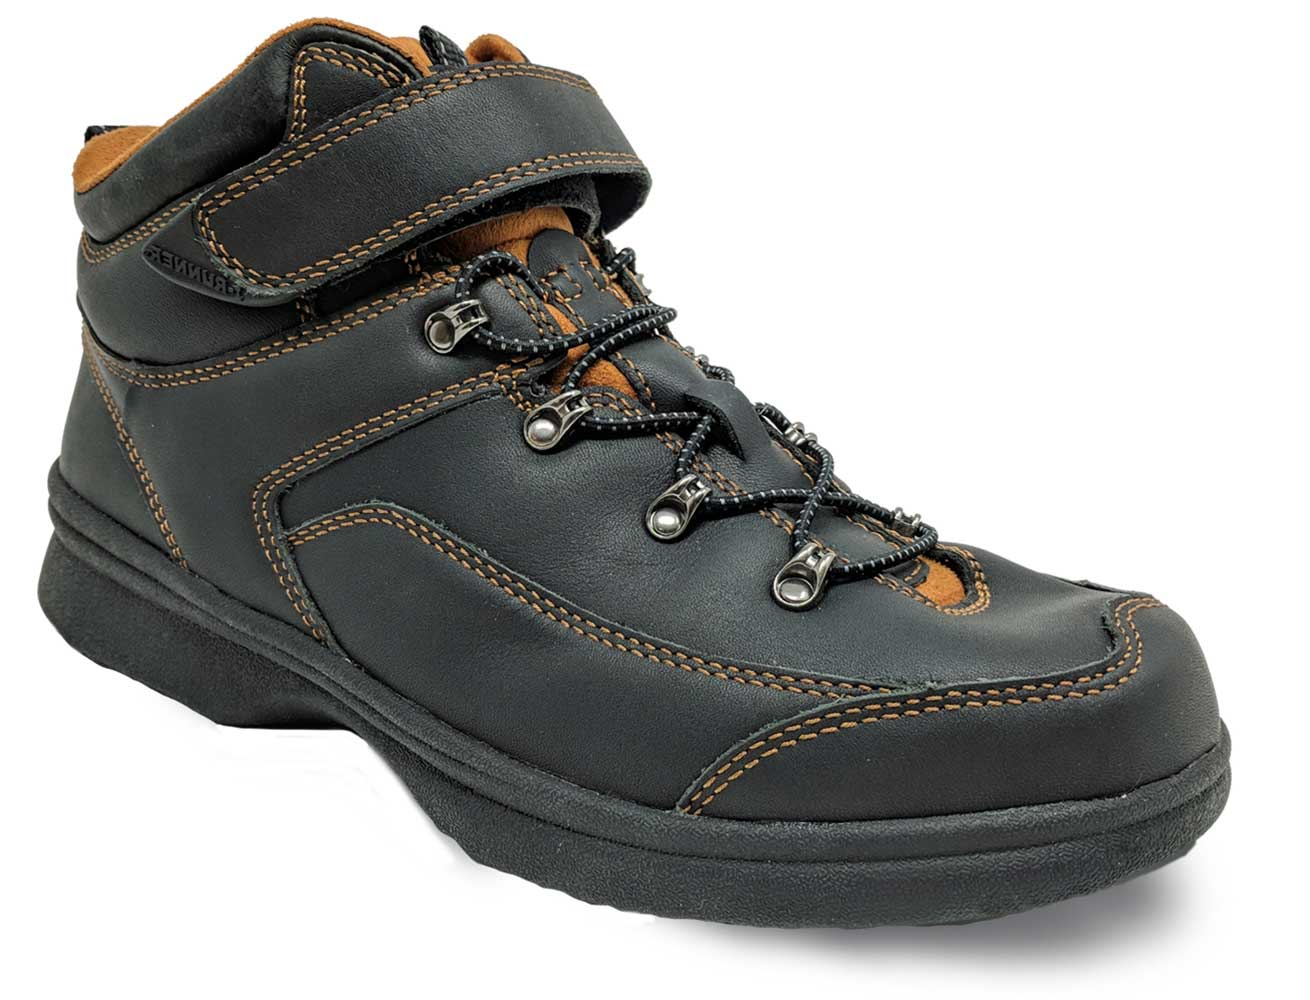 fc8ade39b I-RUNNER Shoes Men s Pioneer Hiking Boot  - Extremely Comfortable ...